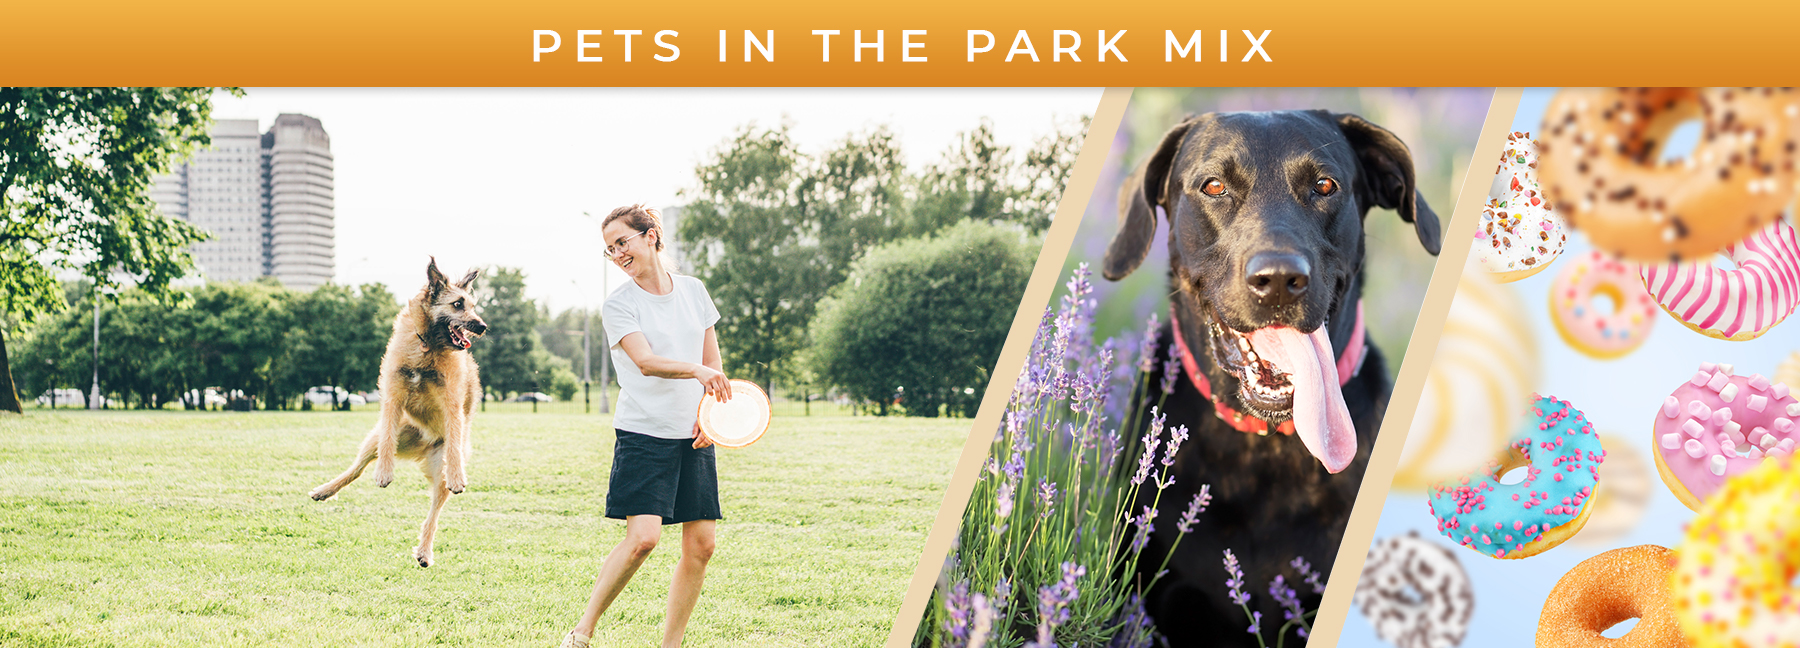 Pets in the Park Mix fragrance elements